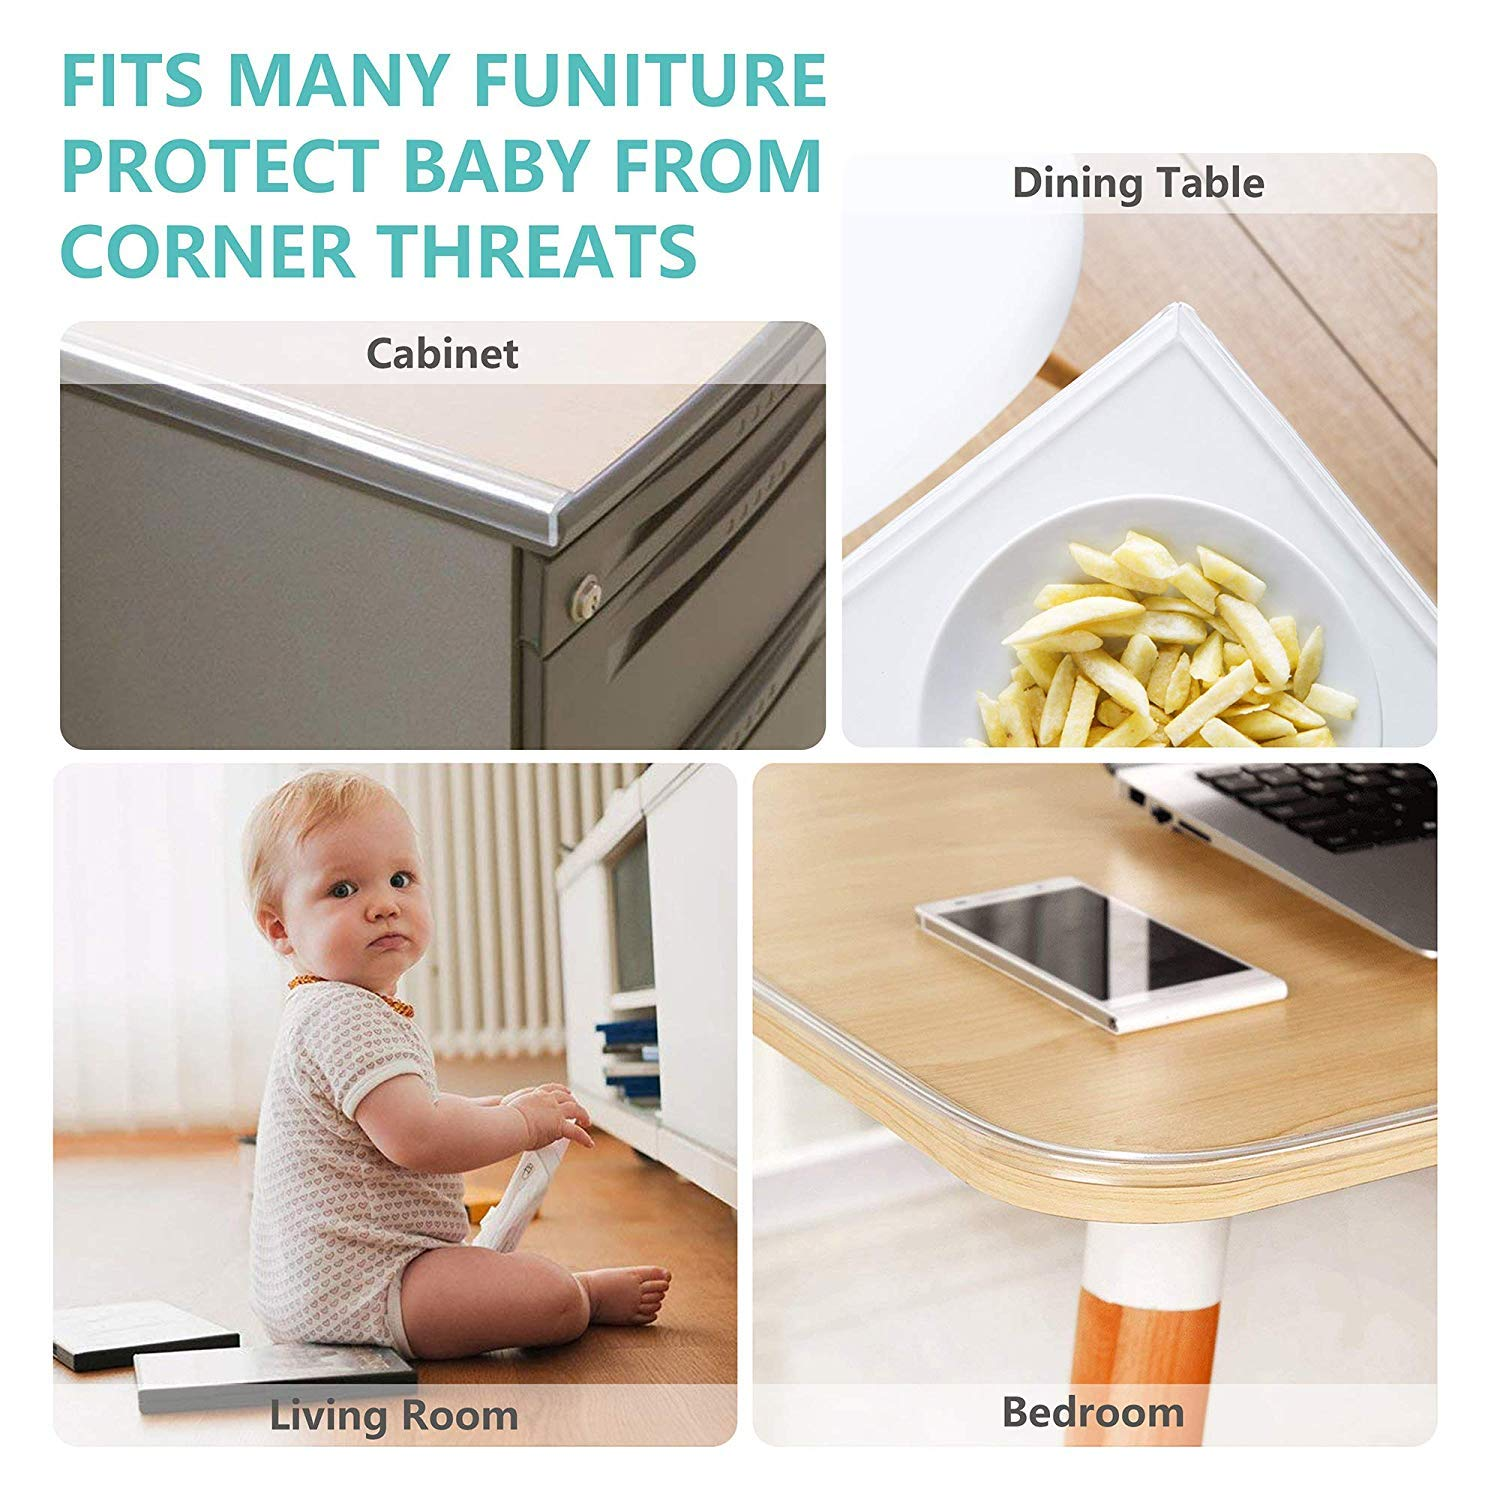 Wemk New Transparent Table Edge Furniture Corner Protectors, 20ft Widen & Thicken Baby Proofing Edge Safety Bumpers Strip, Safety for Child by Wemk (Image #7)